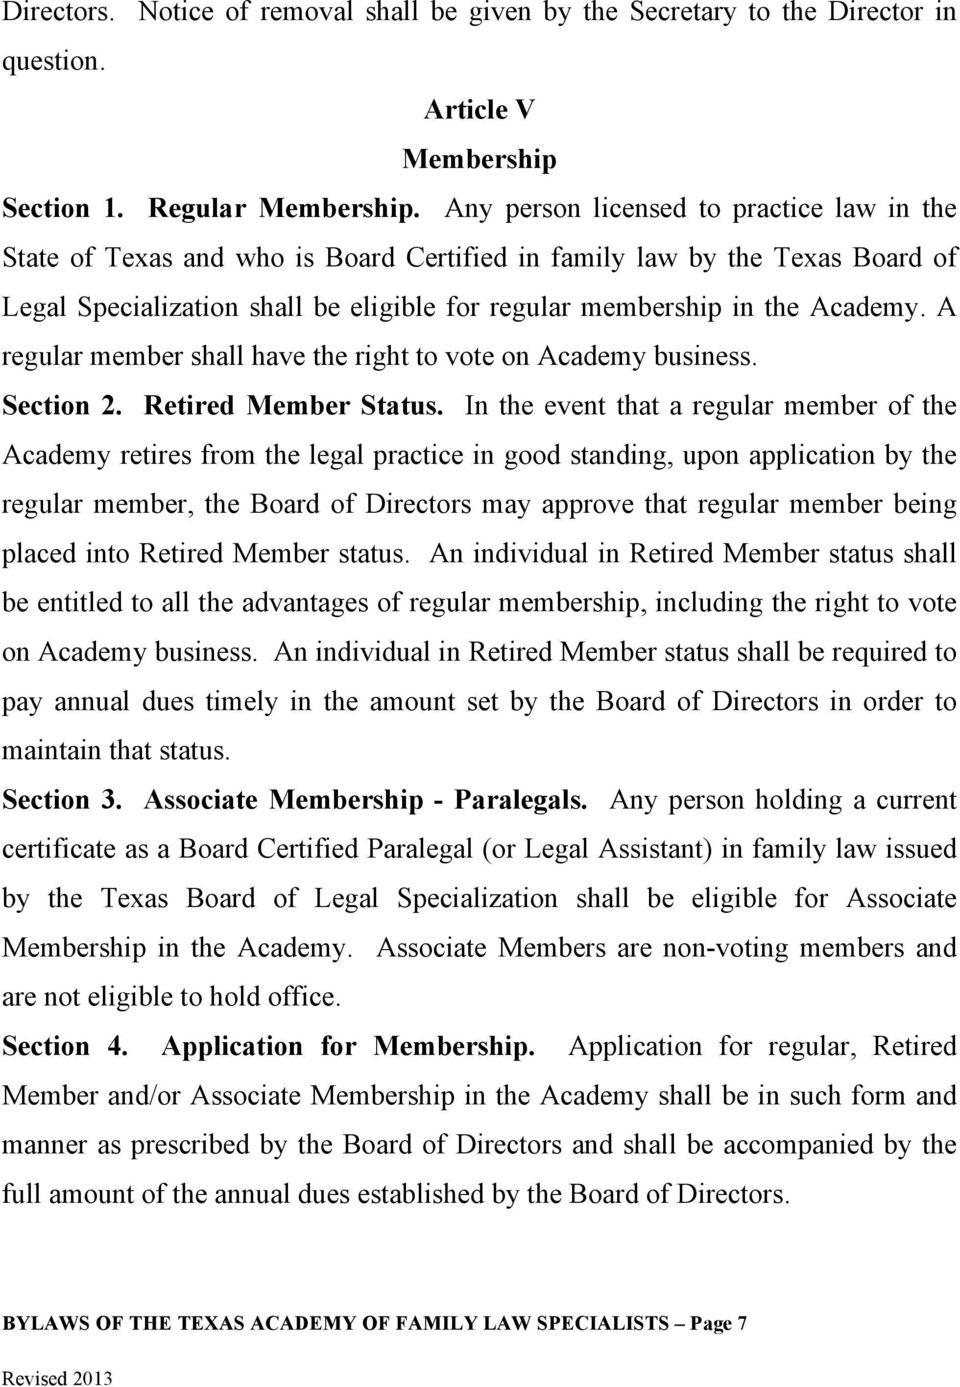 A regular member shall have the right to vote on Academy business. Section 2. Retired Member Status.